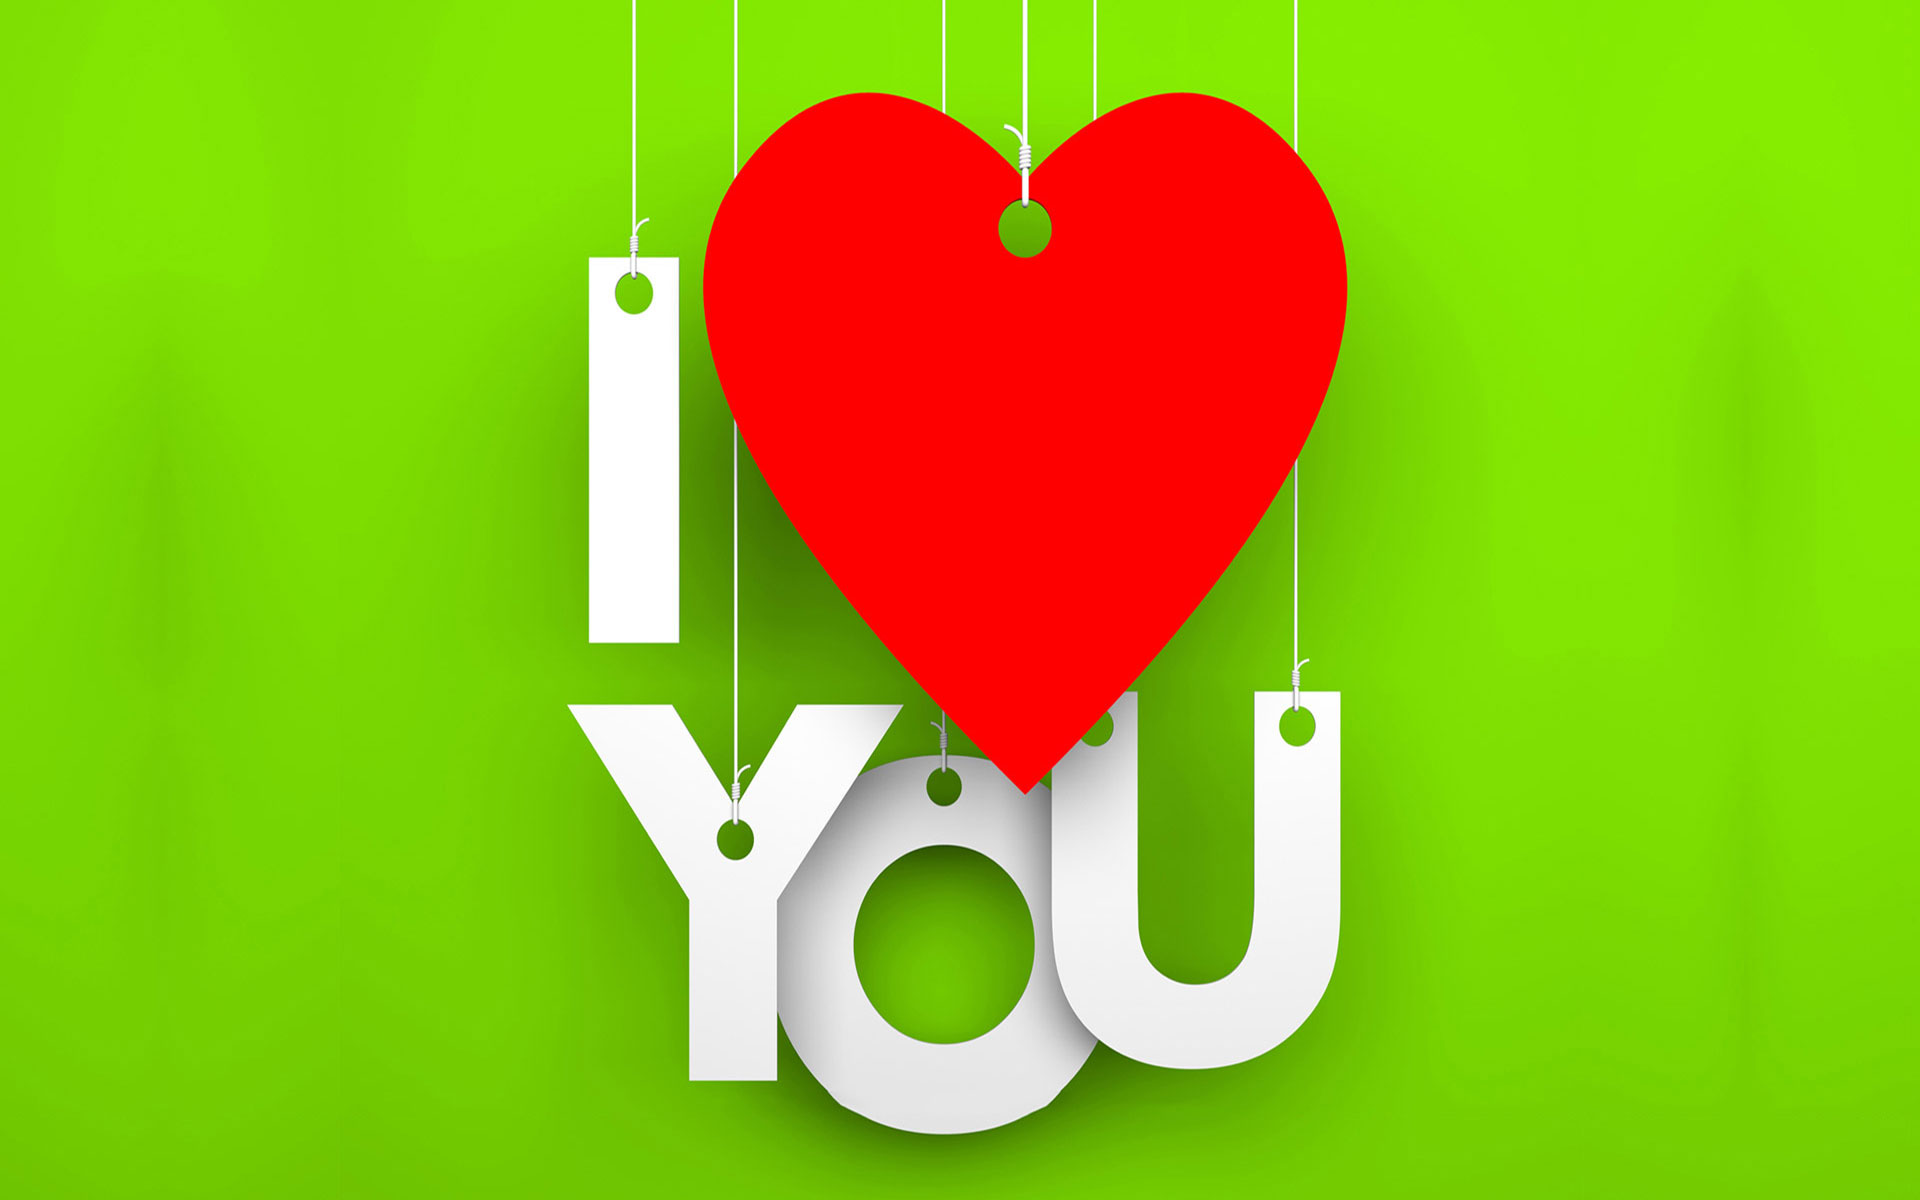 L Love U Hd Wallpaper : 25+ Free HD I Love You Wallpapers cute I Love You Images